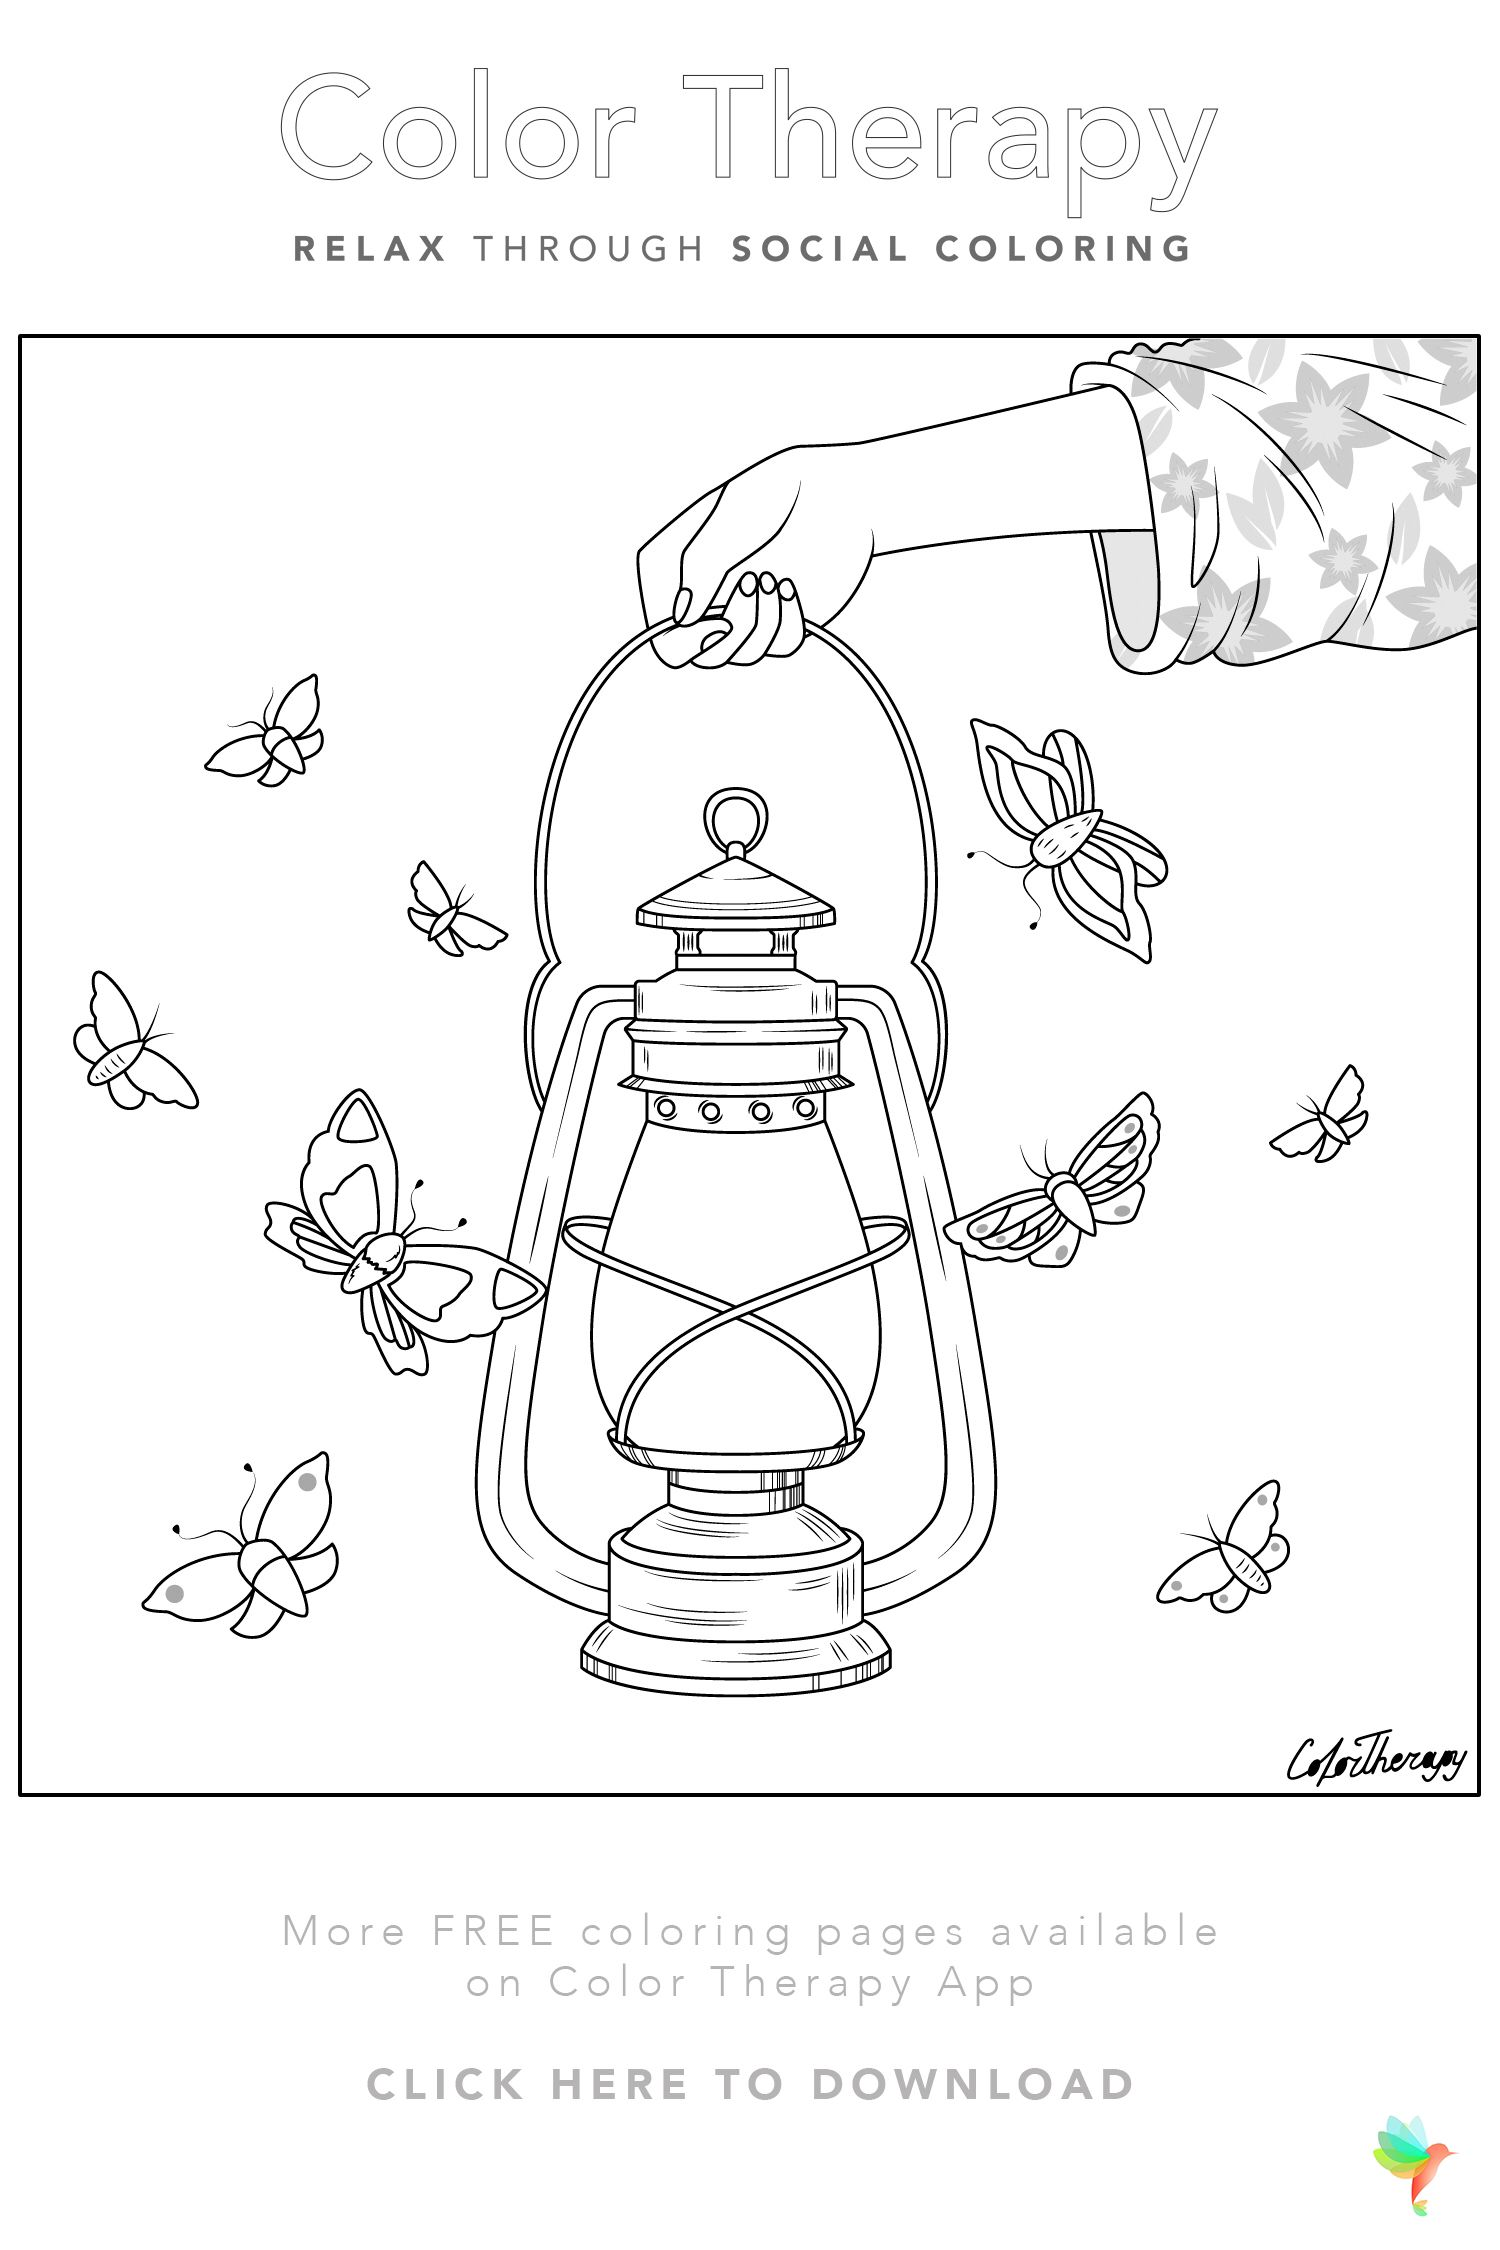 Color Therapy Gift Of The Day Free Coloring Template Color Therapy Free Coloring Pages Color Therapy App